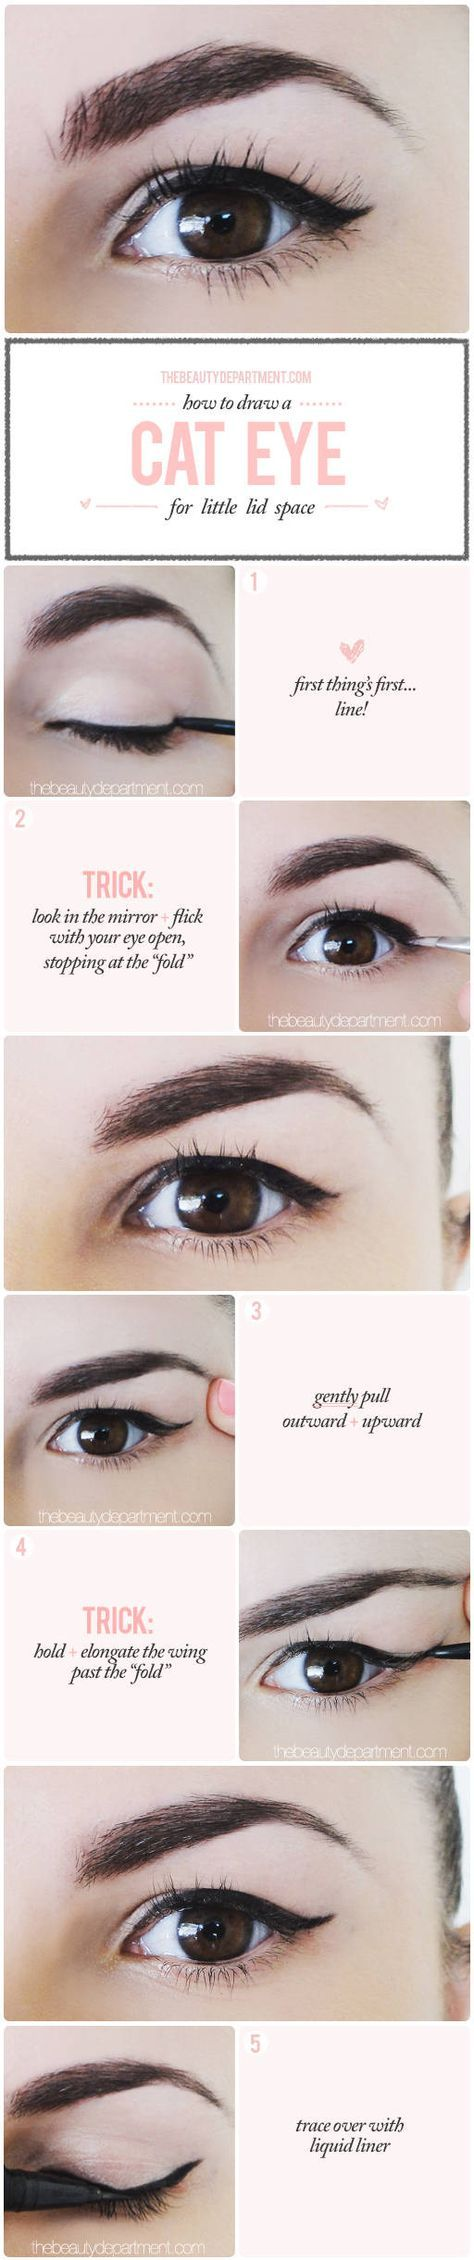 """That's how simple as it is! Winged liner for a """"droopy"""" lid that """"folds"""" where the line goes!"""